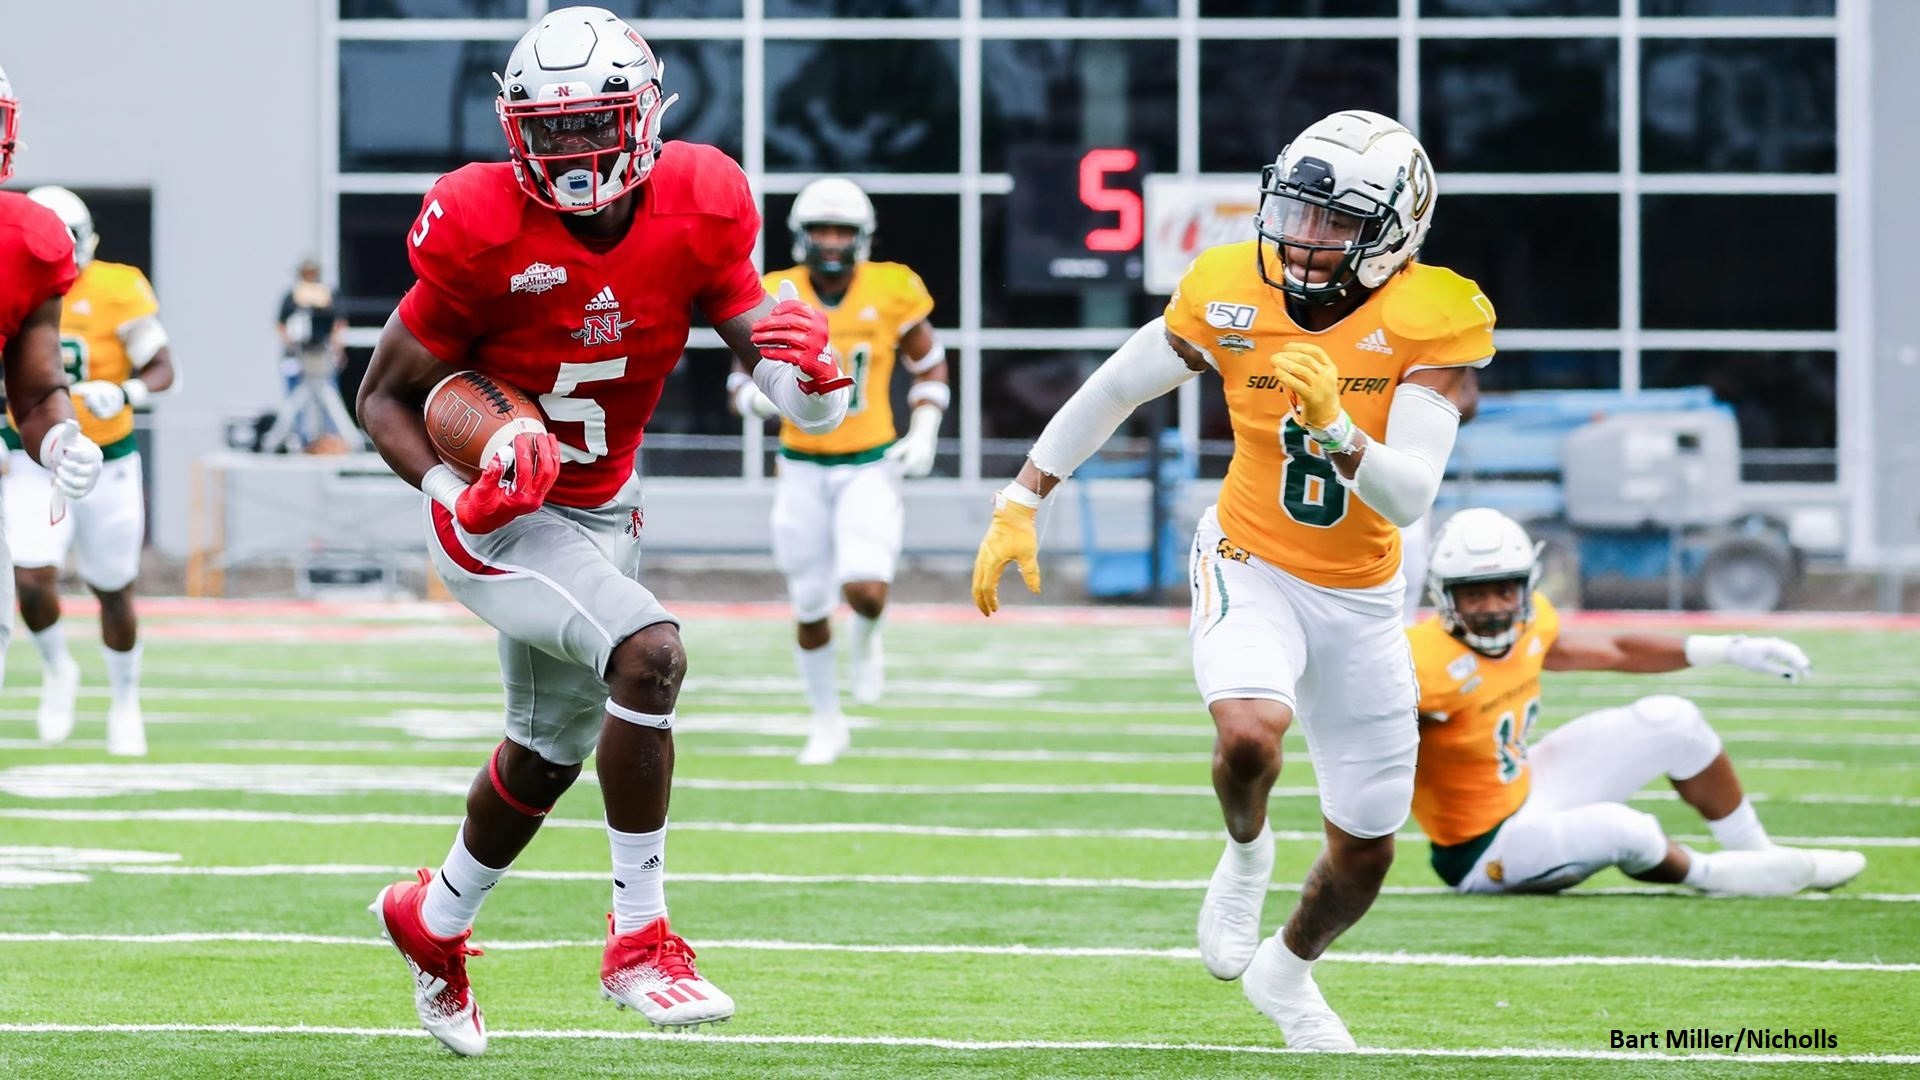 Baker's Dozen of the Best FCS Conference Games This Week